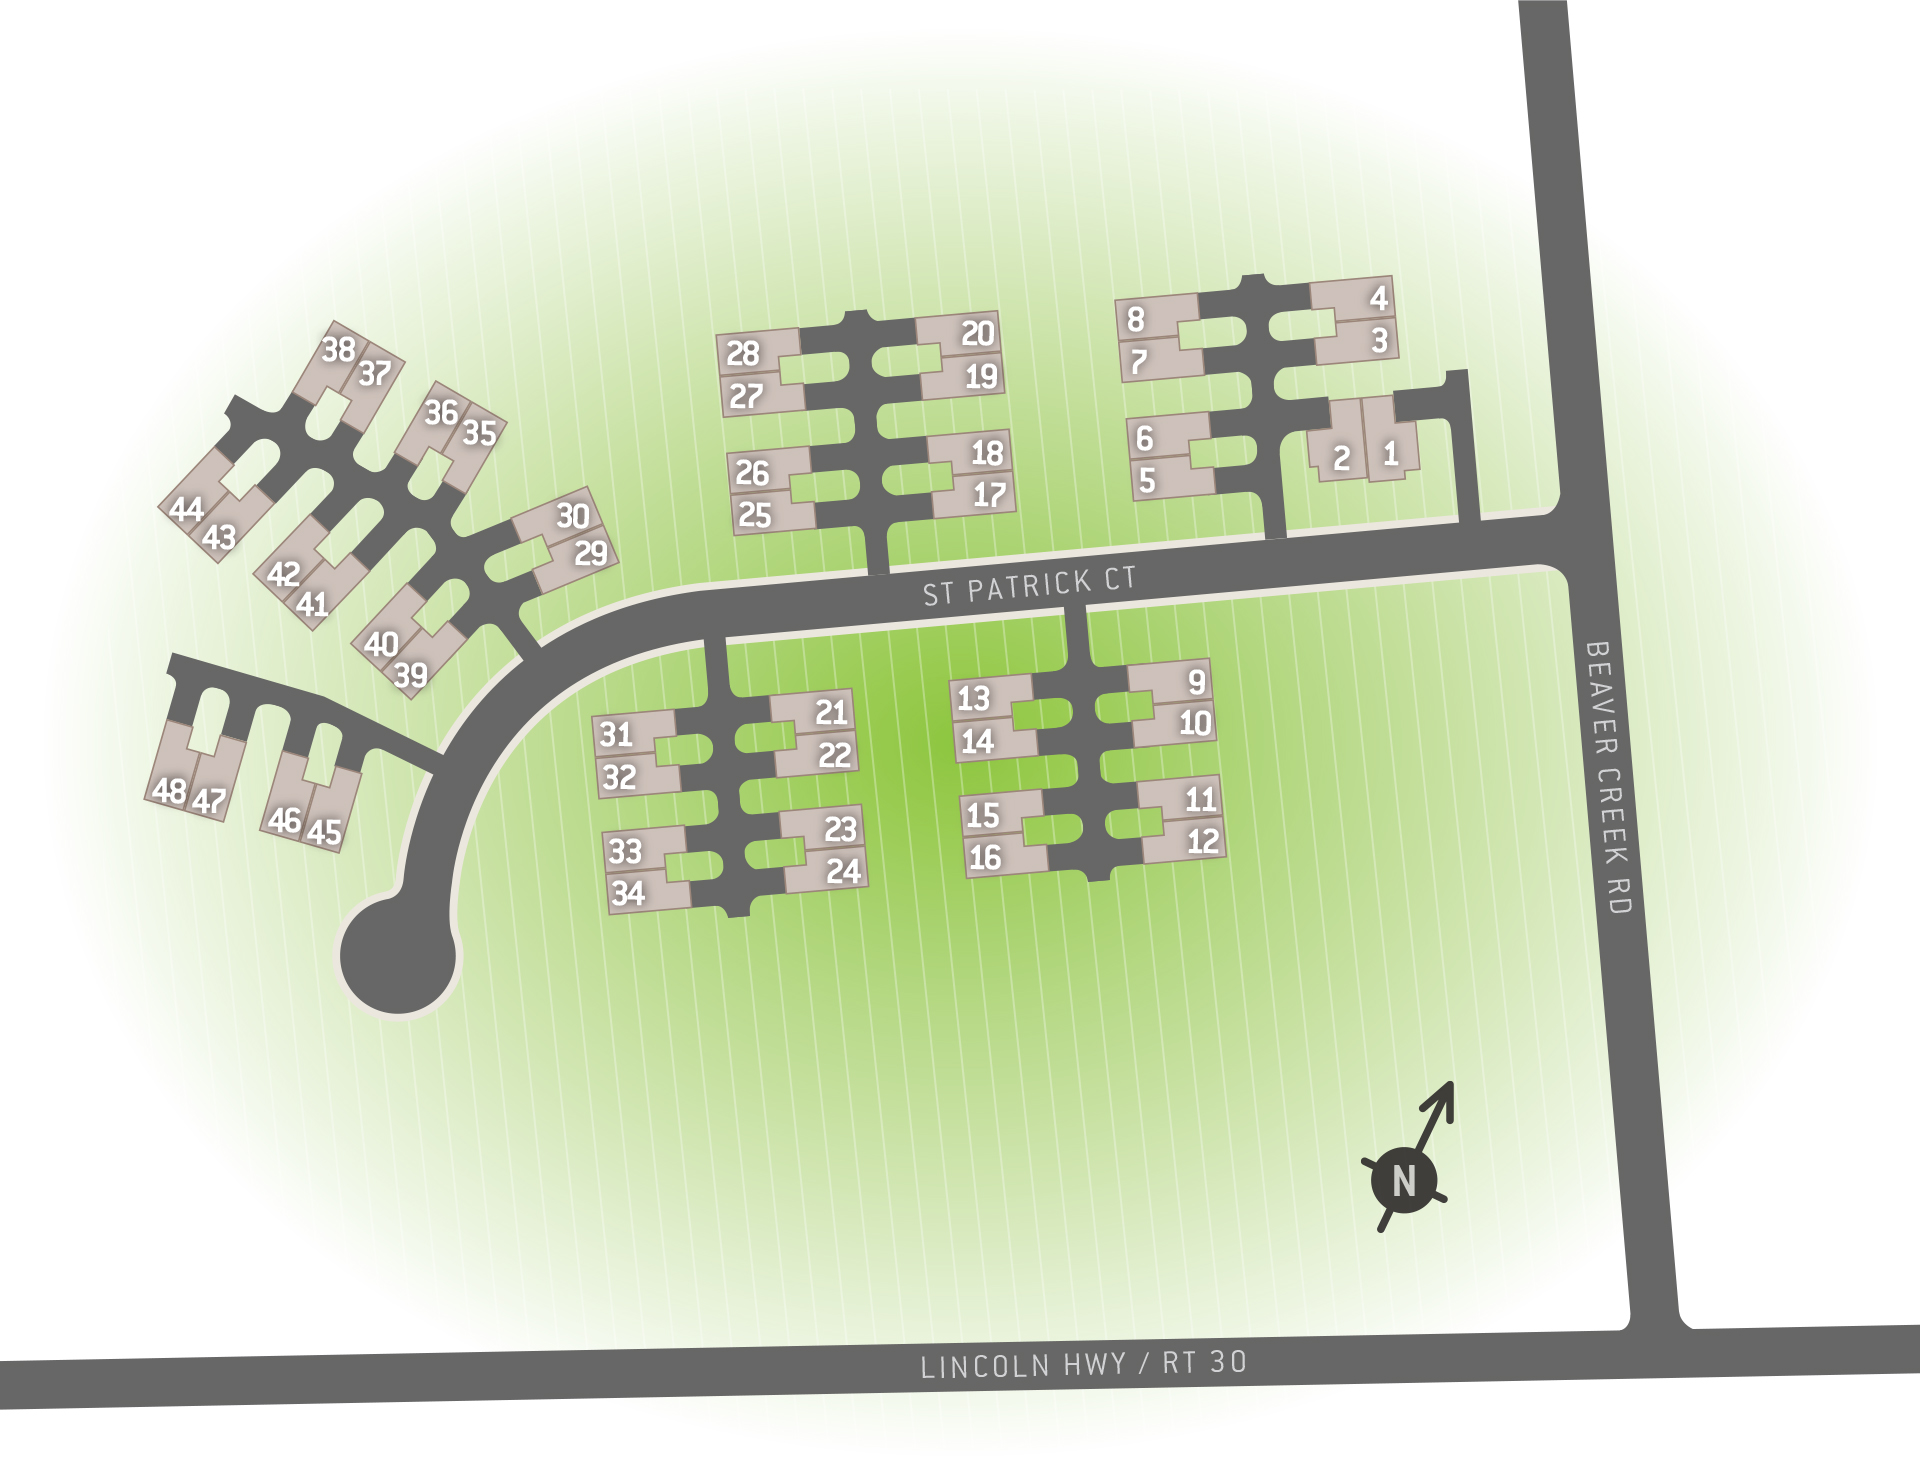 Abbotstown, PA Paradise Village New Homes from Berks Homes